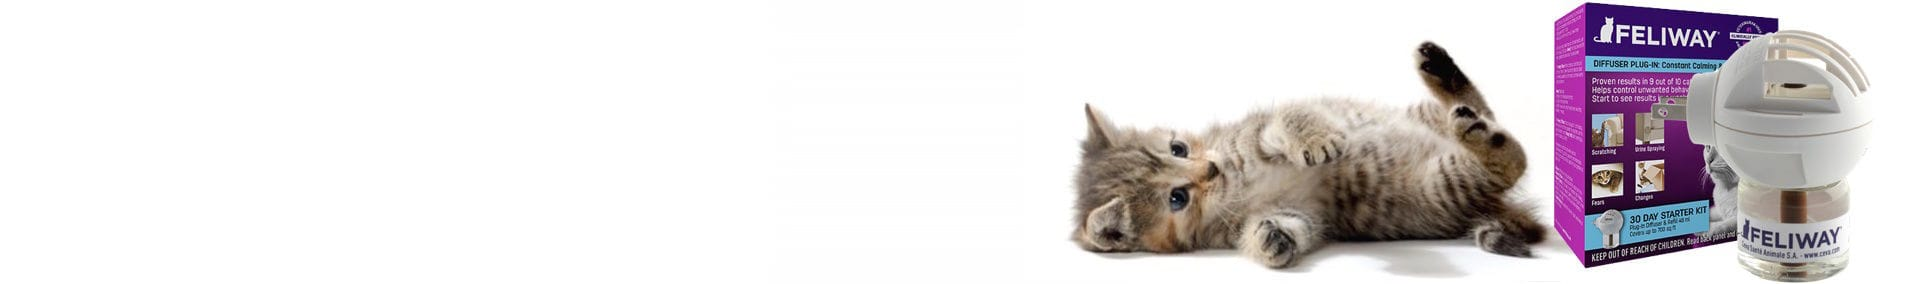 Cats and Kittens love Feliway Diffuser's